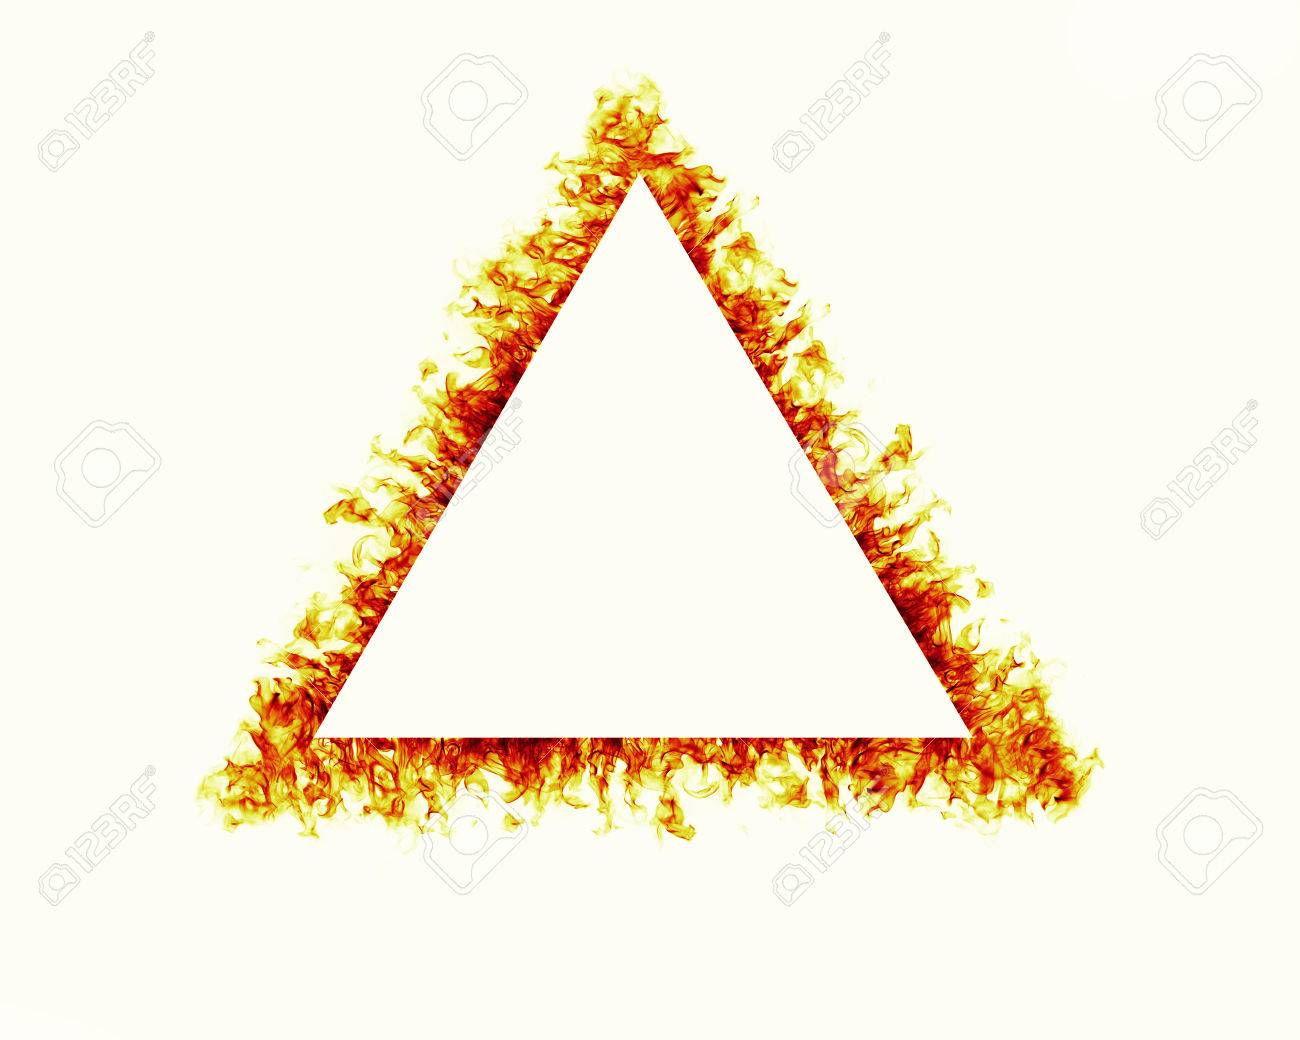 Triangle Fire Flames Frame On White Background Stock Photo, Picture ...